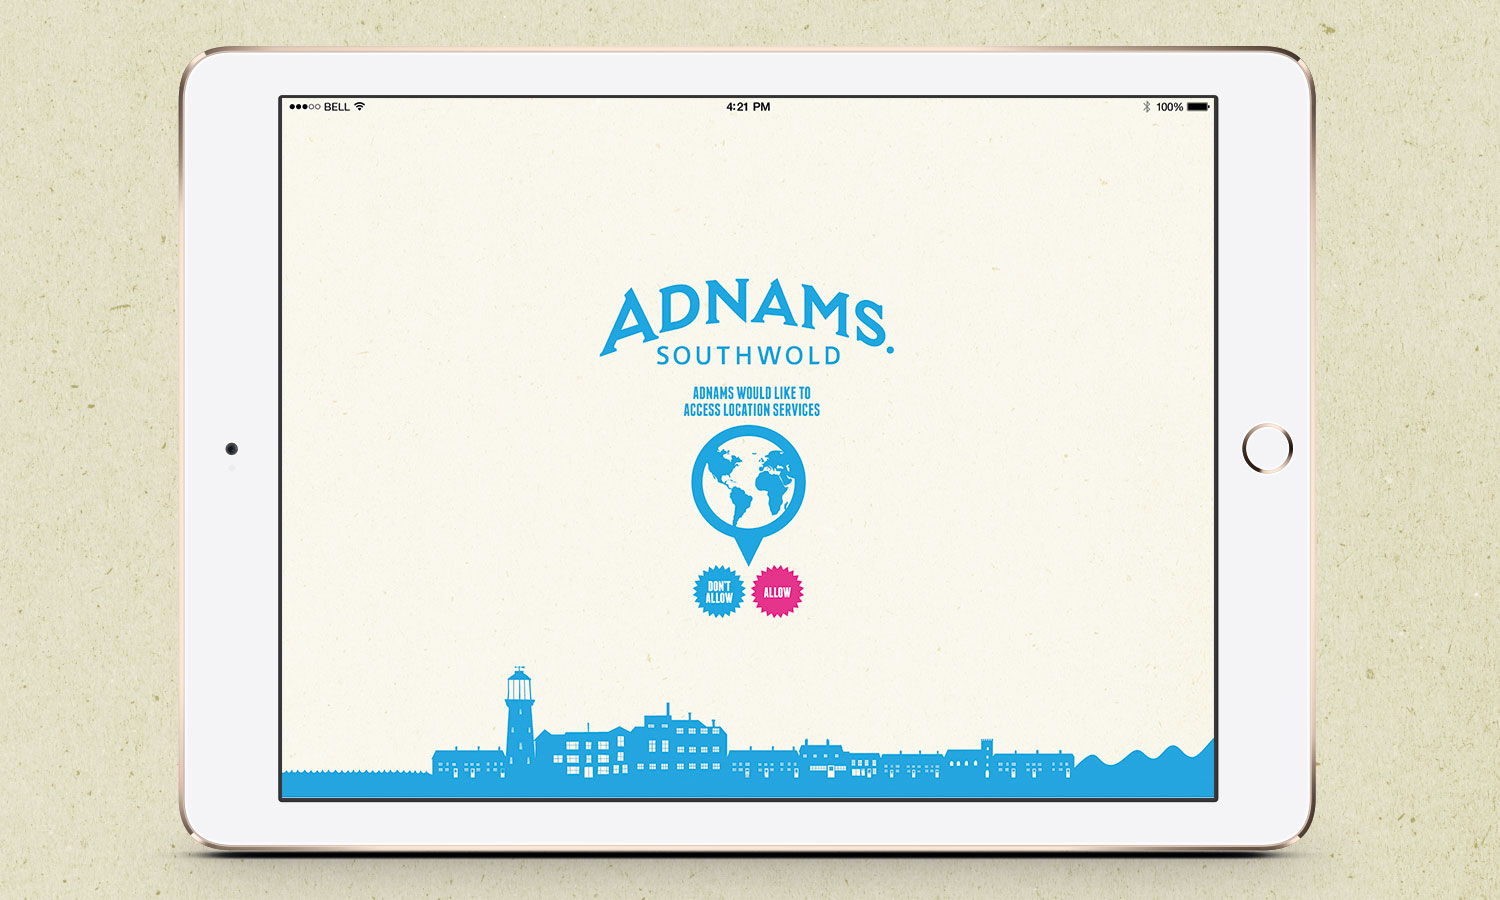 adnams-brewery-ipad-app-screen-design-by-creative-giant-agency-norwich.jpg